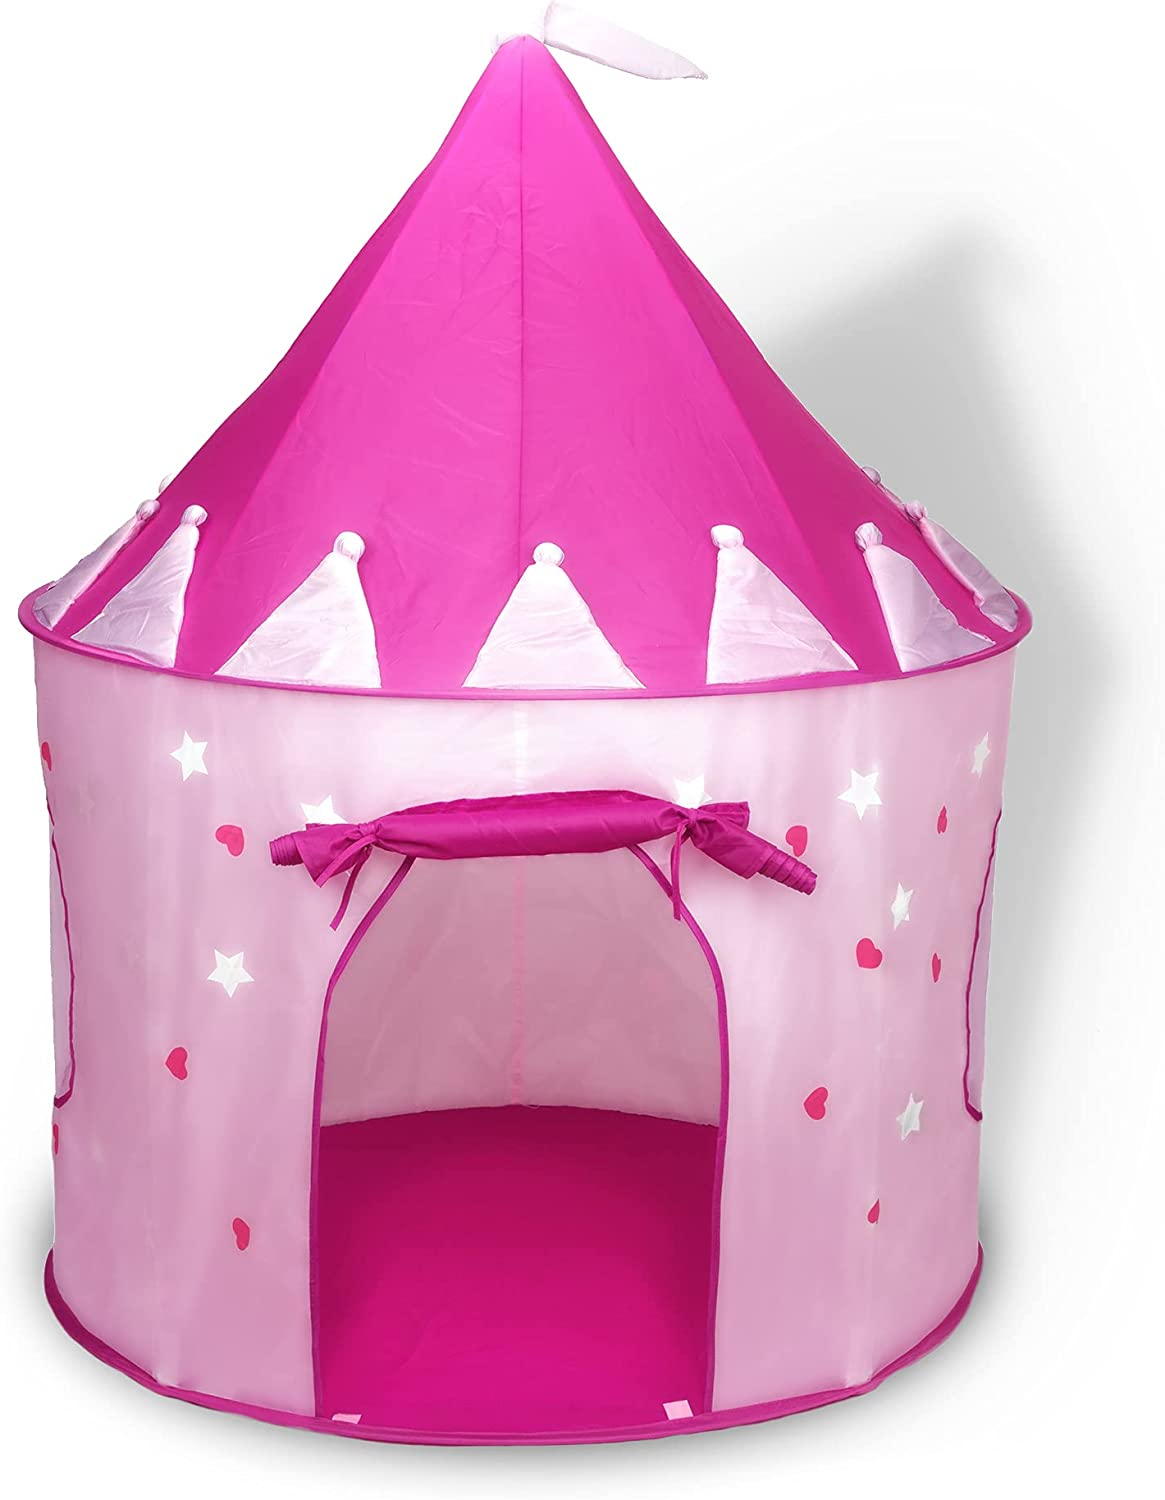 FoxPrint Princess Popular standard Castle Play Tent With The Dark In Glow Virginia Beach Mall Stars